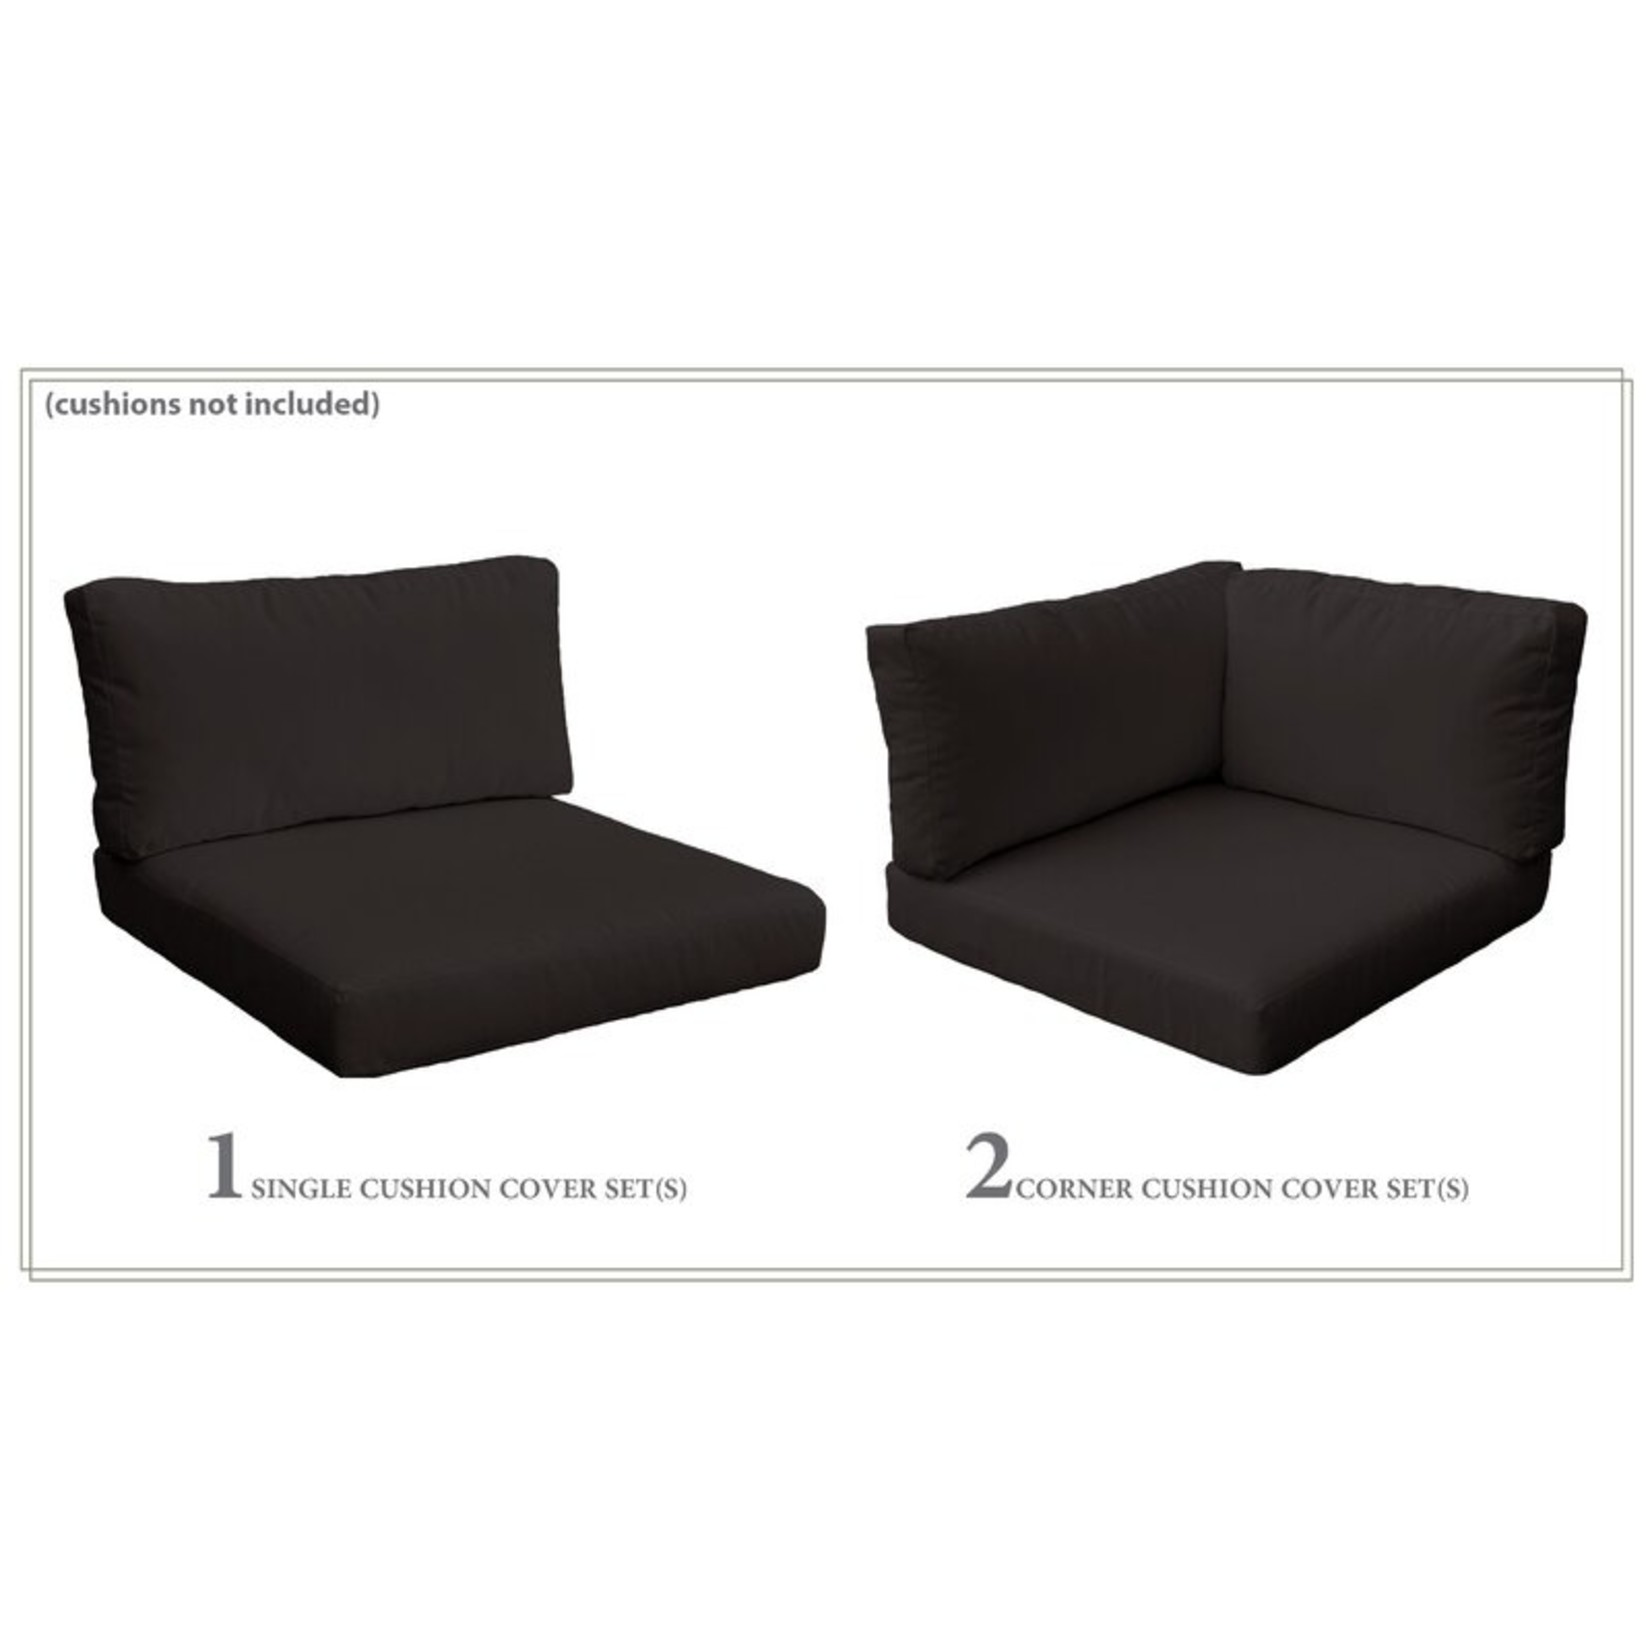 *Rochford 3 Piece Indoor/Outdoor Cushion Cover Set (Covers Only) - Final Sale